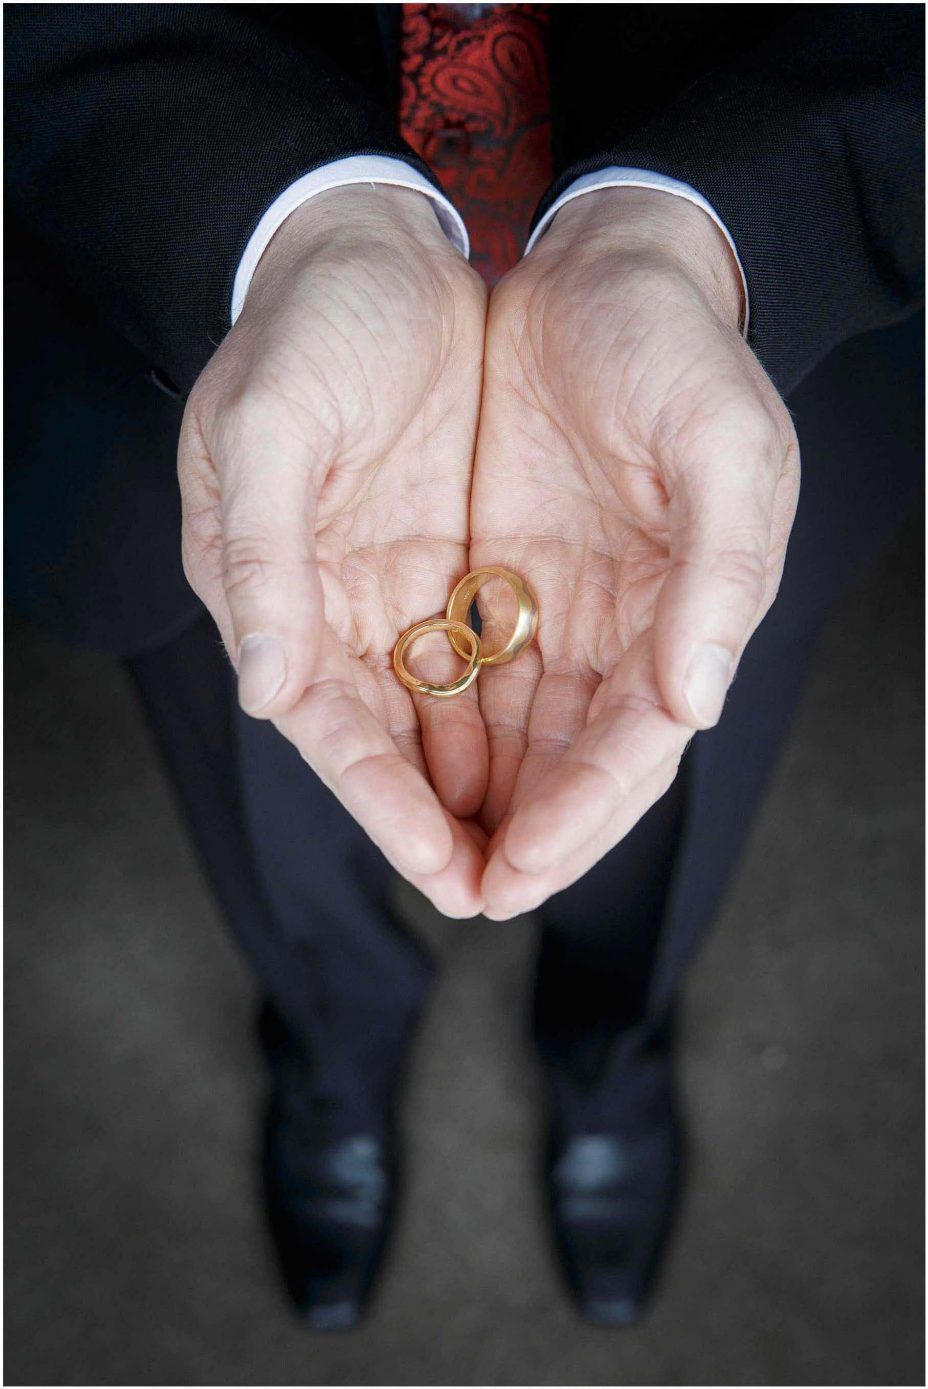 Close up photo of gold wdding rings in a man's cupped hands.